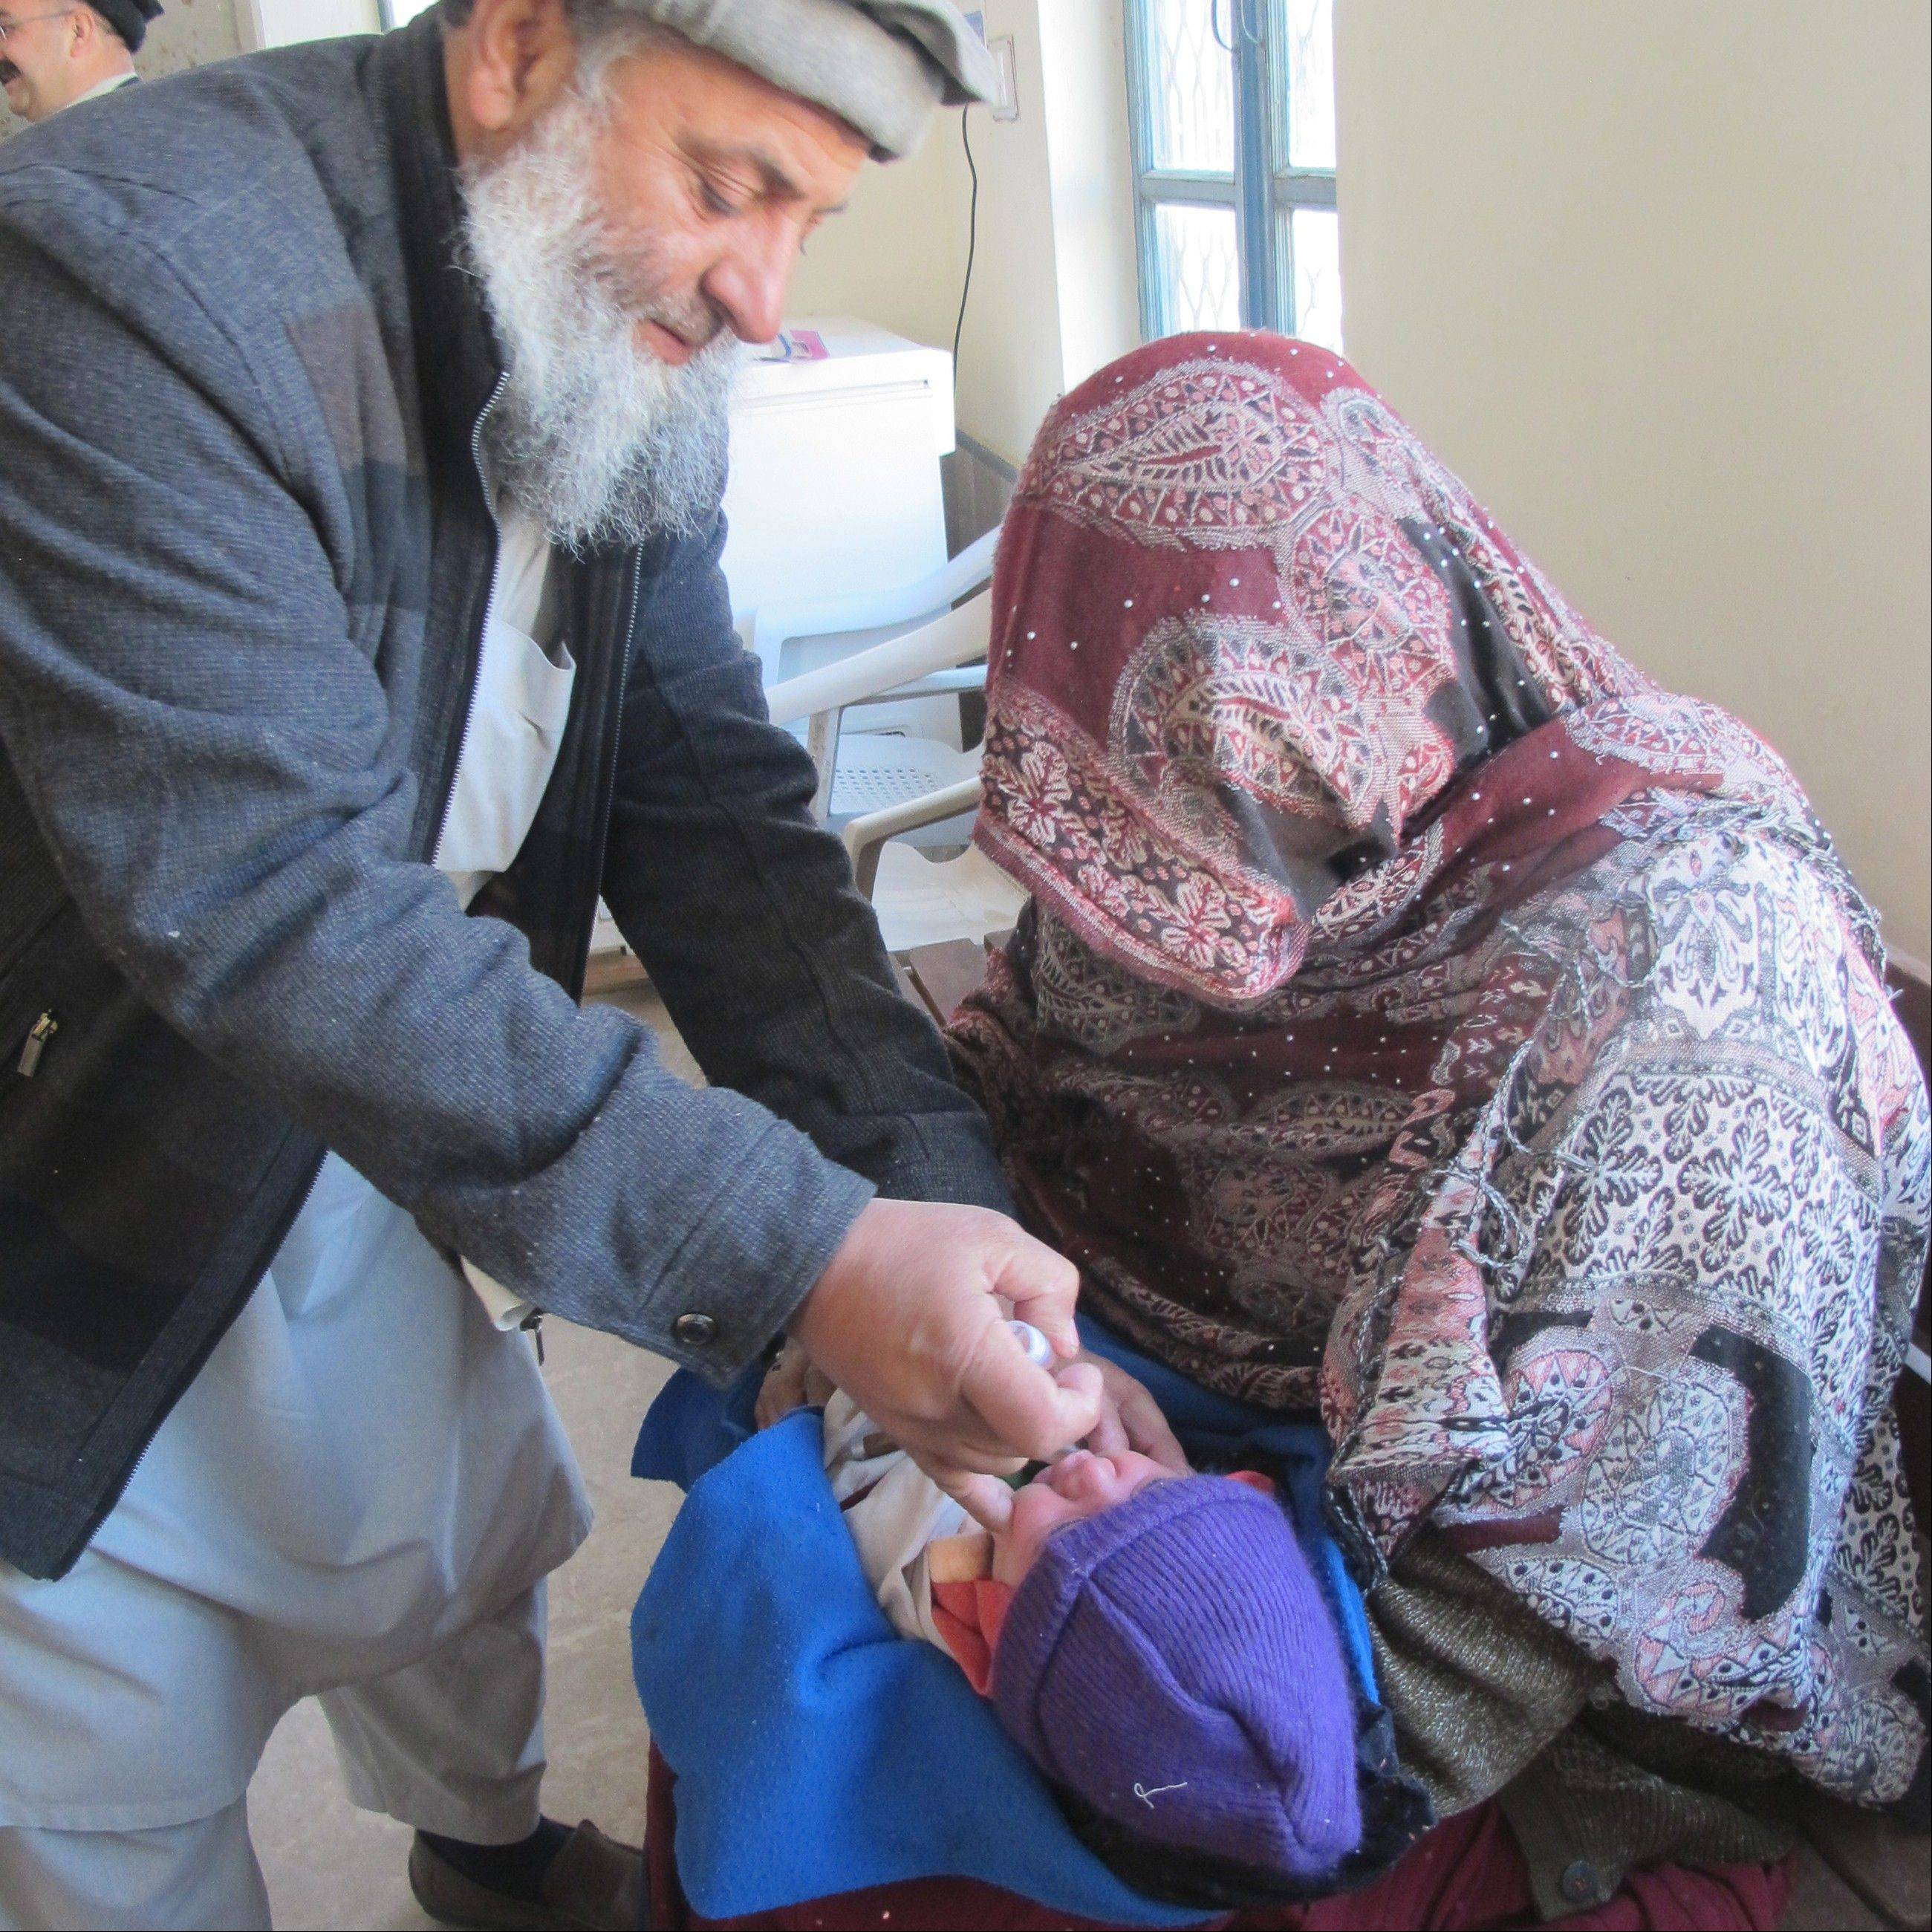 Jamal Shah, left, and an assistant vaccinate a one-month-old infant against polio on Jan. 3, in the Akora Khattak region of northwest Pakistan.